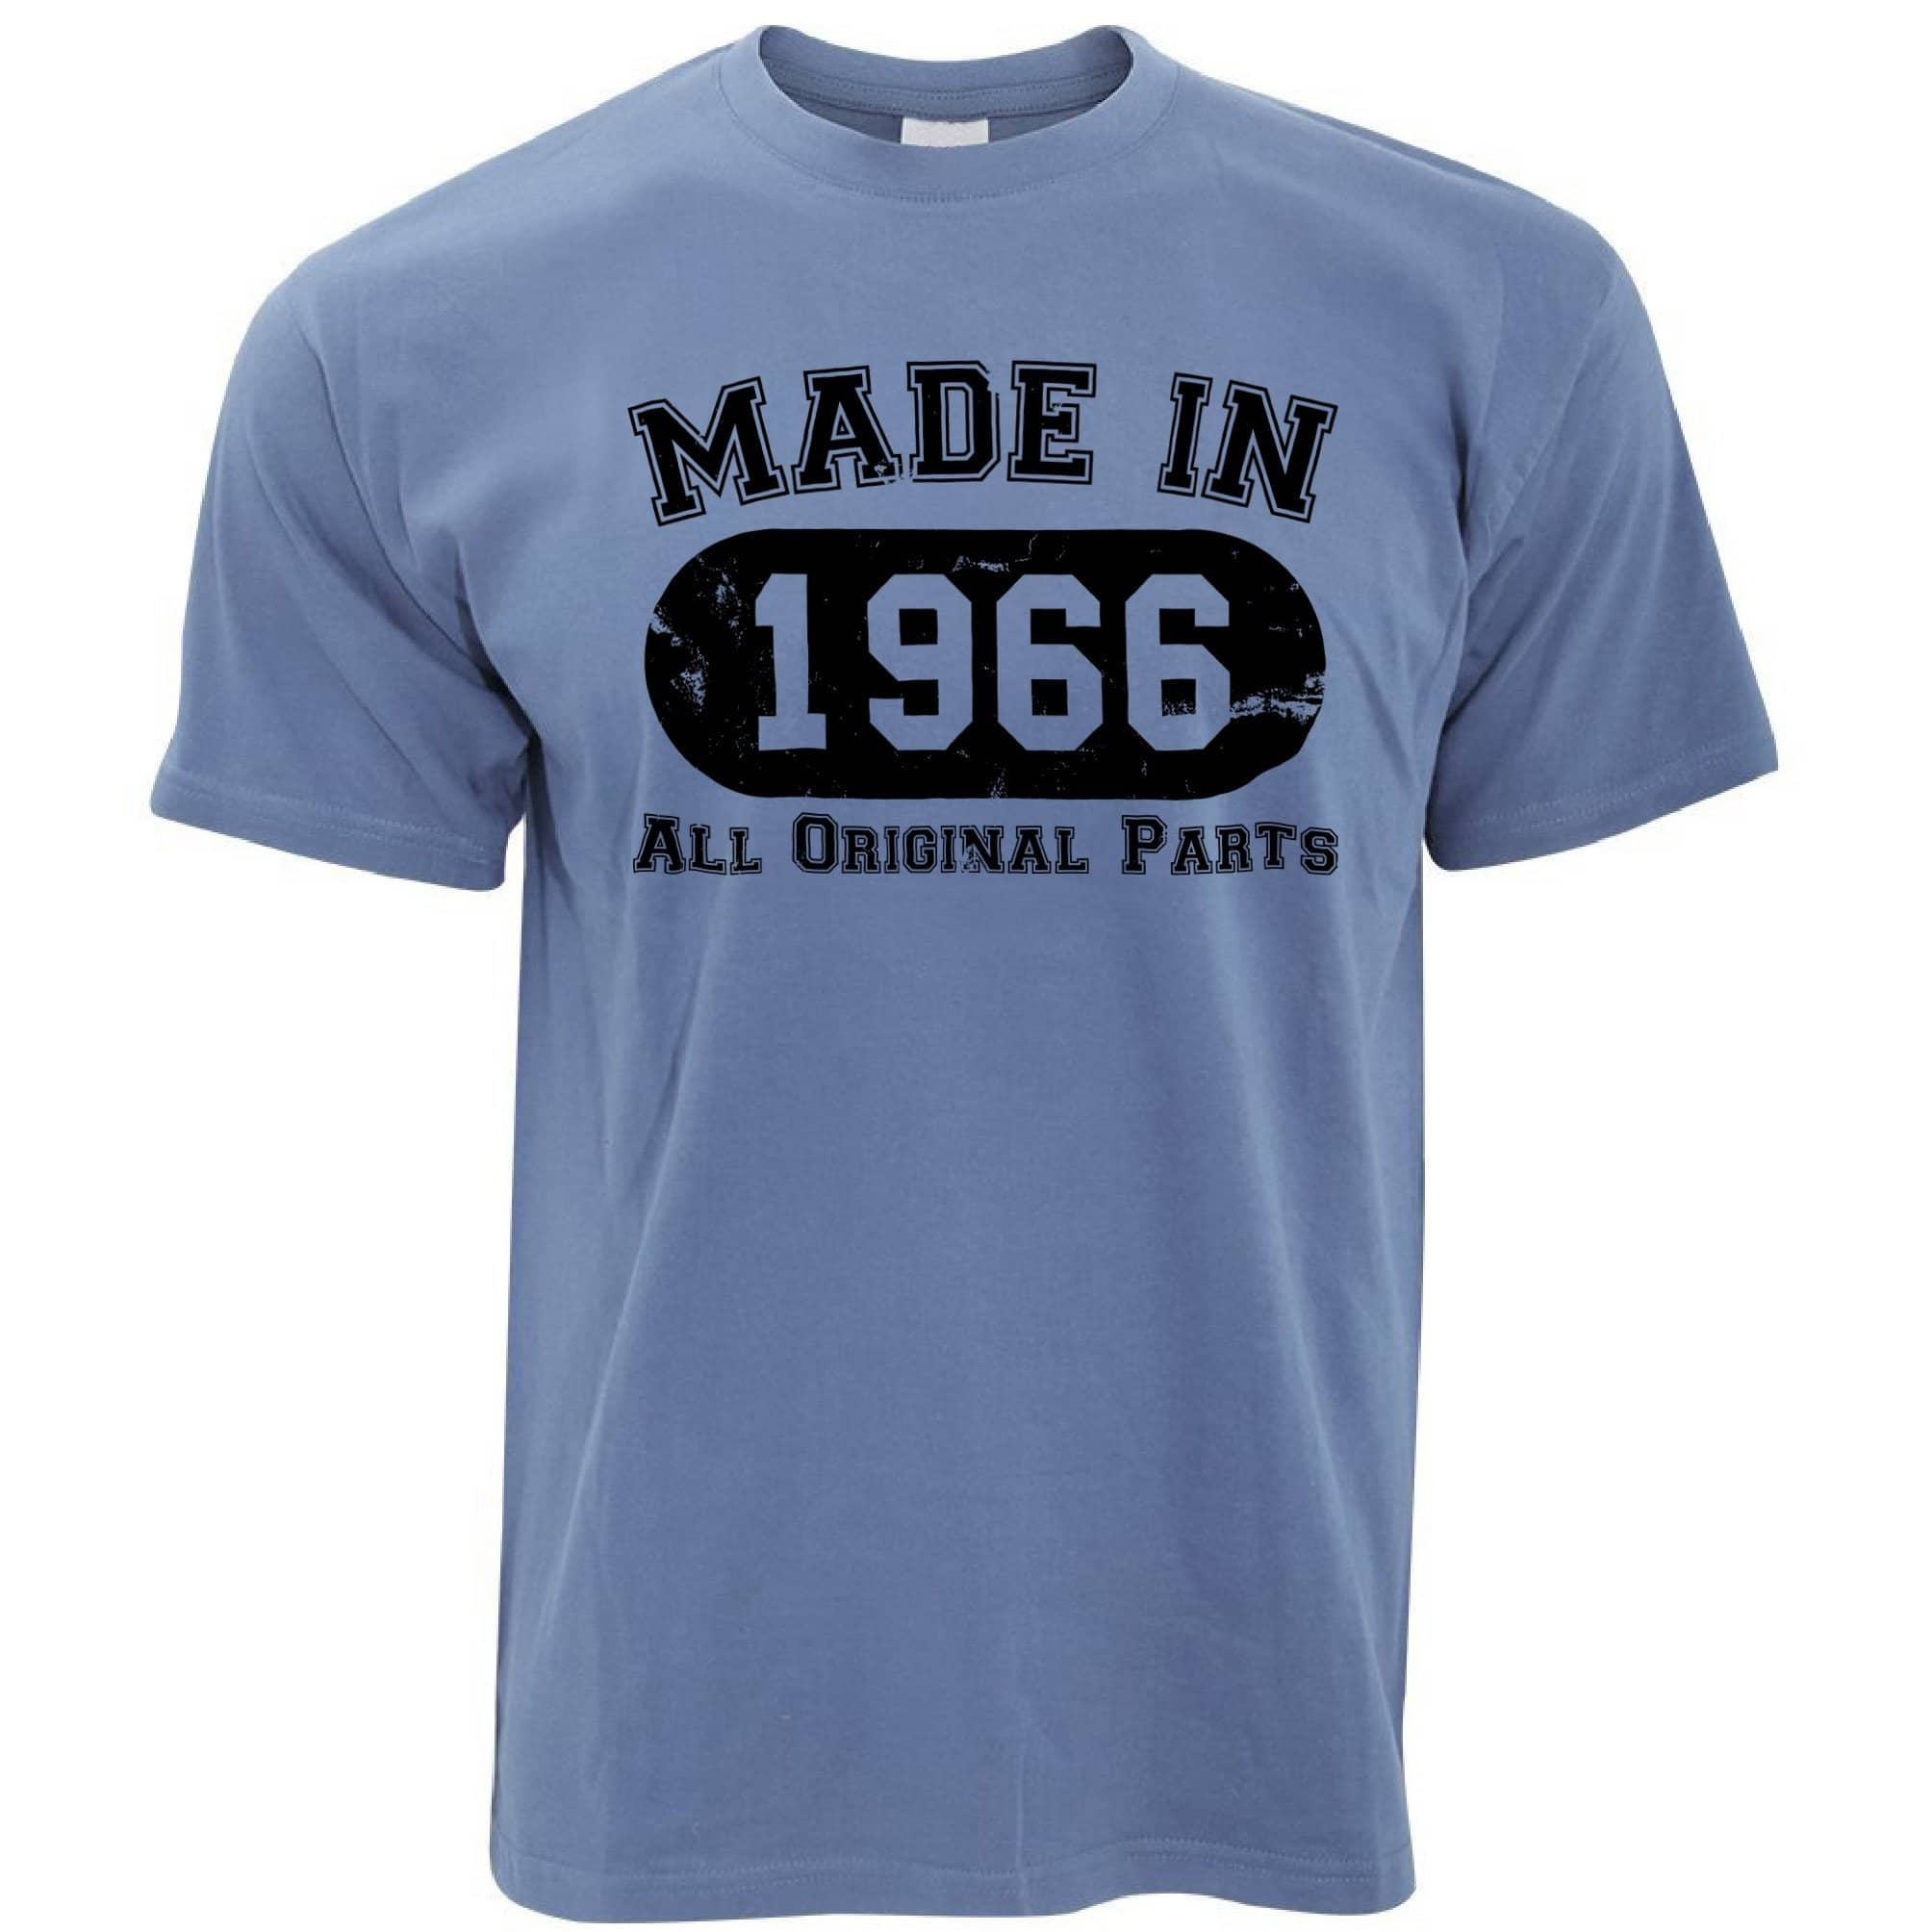 Made in 1966 All Original Parts Mens T-Shirt [Distressed]